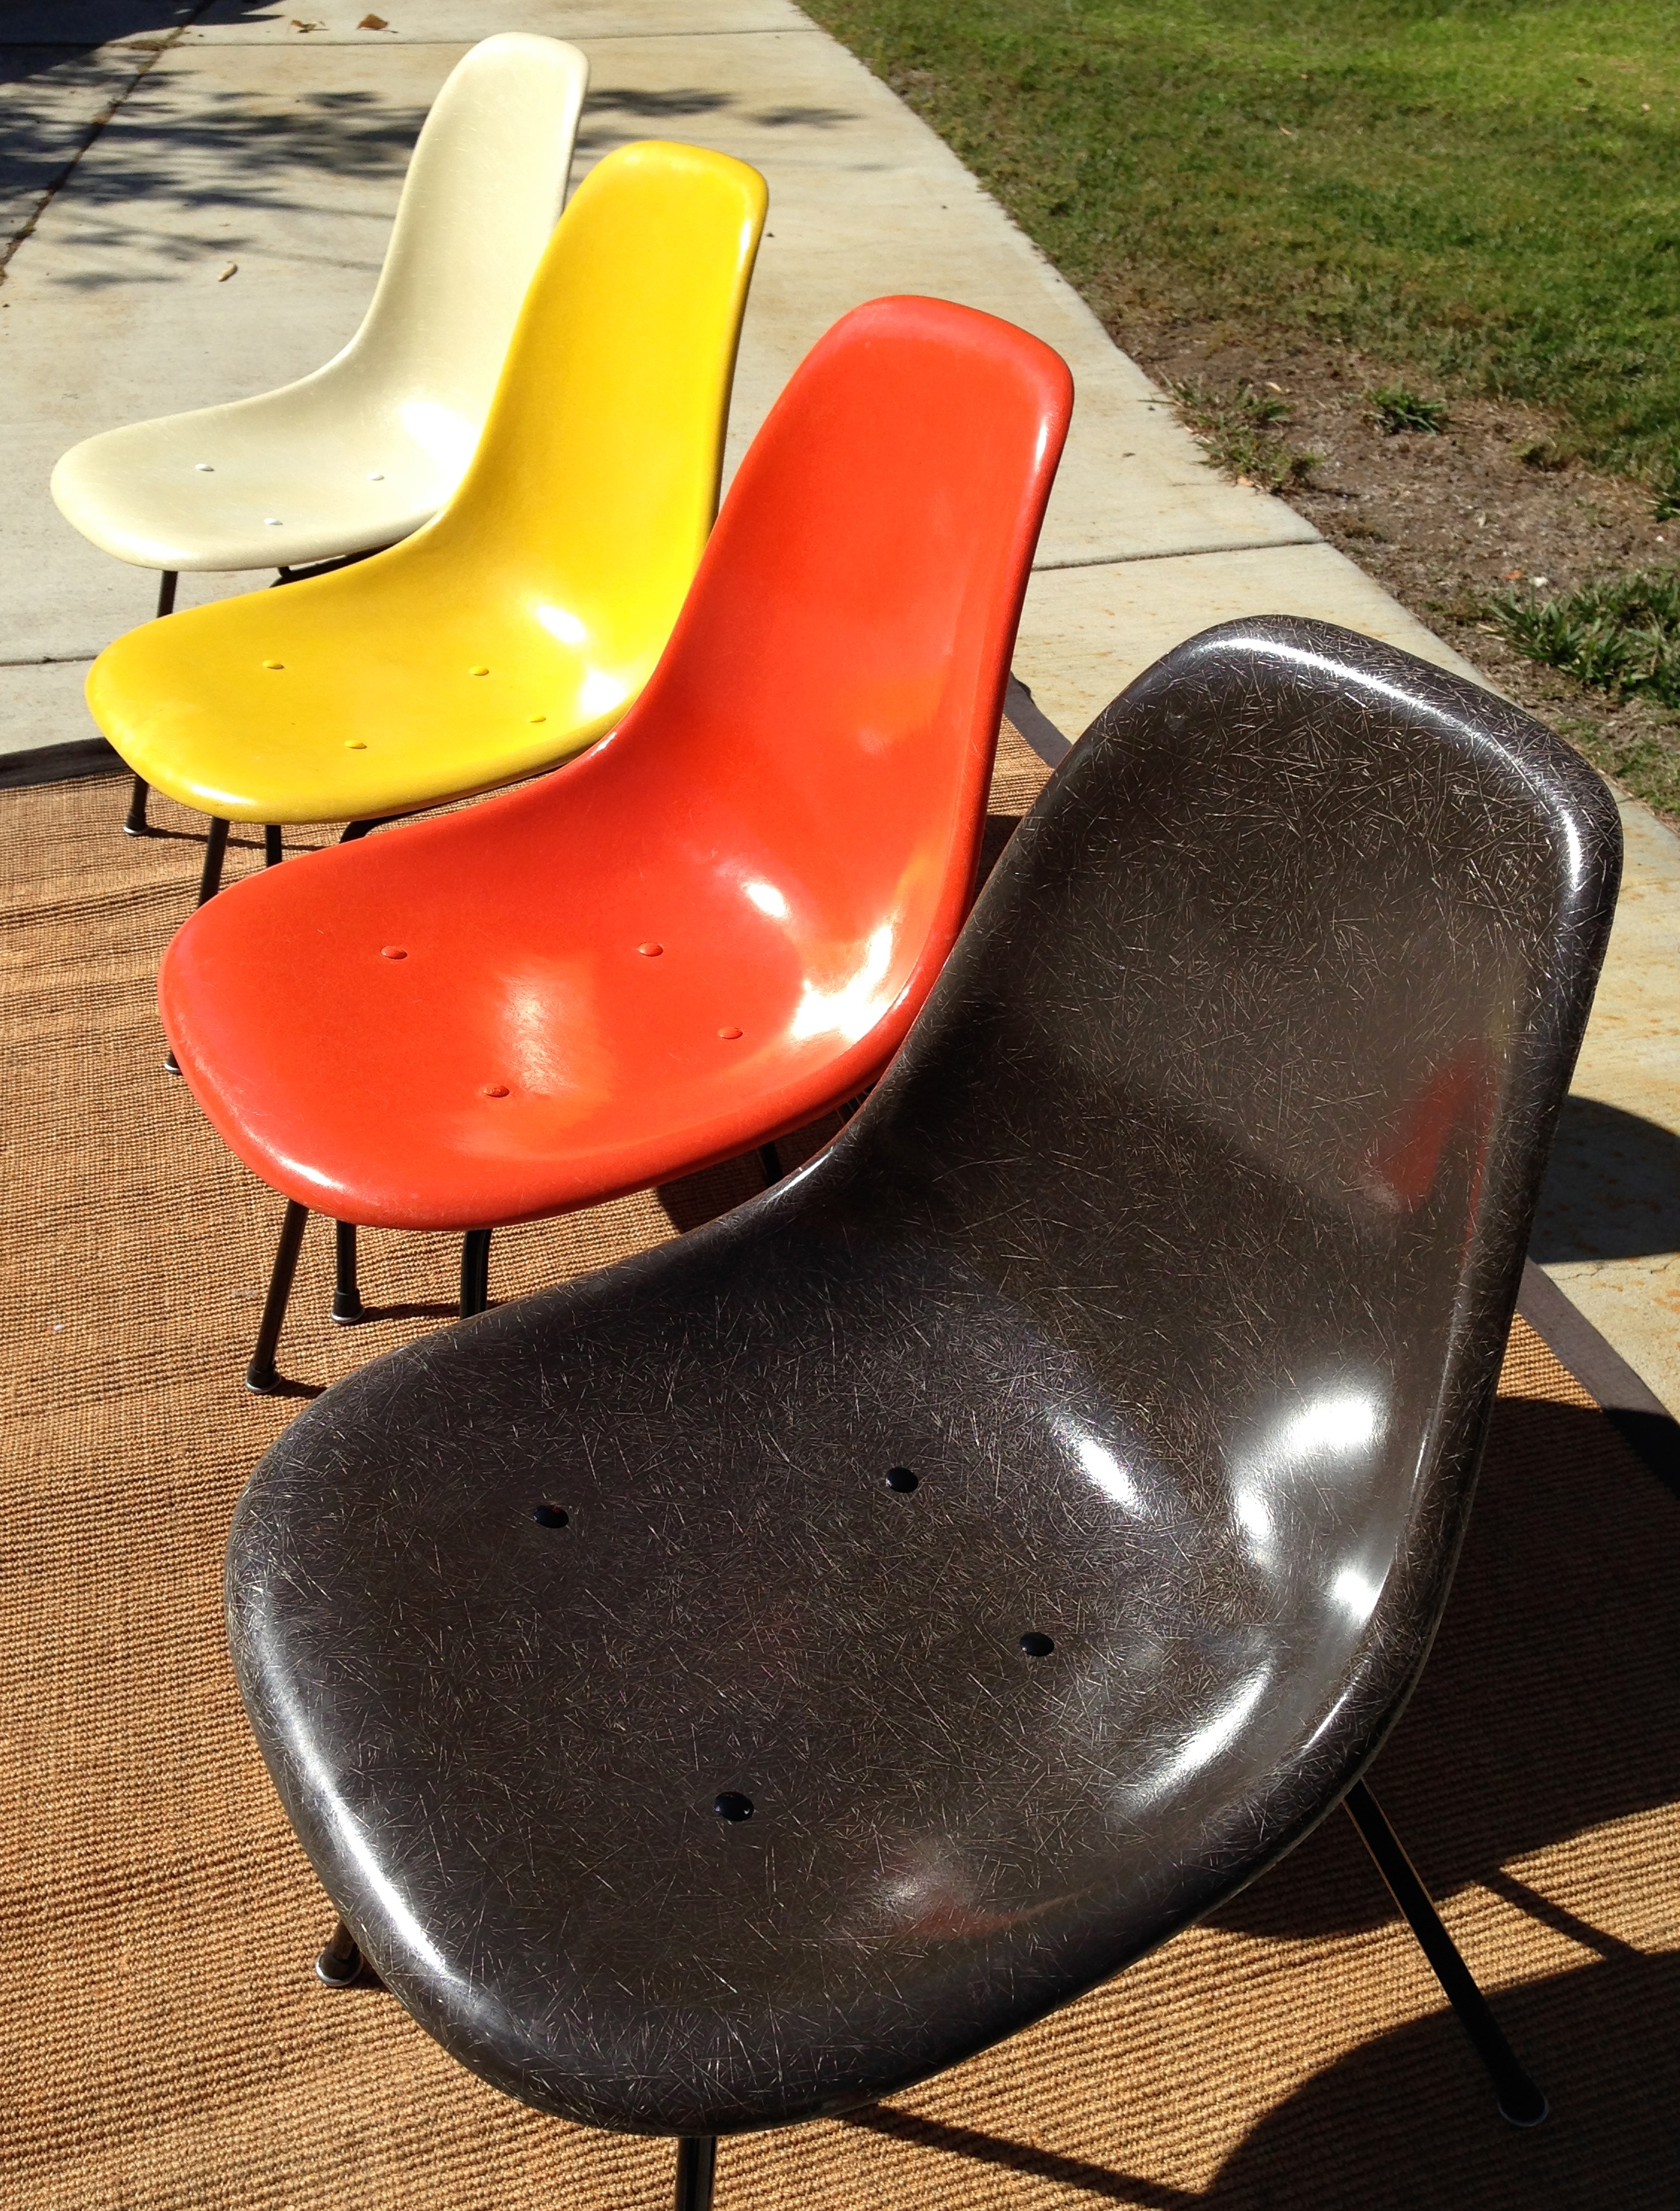 Set Of 4 Authentic Vintage Mid Century Fiberglass Side Chairs Designed By  Charles Eames For Herman Miller. All These Chairs Have Either Been Cleaned  Up Or ...